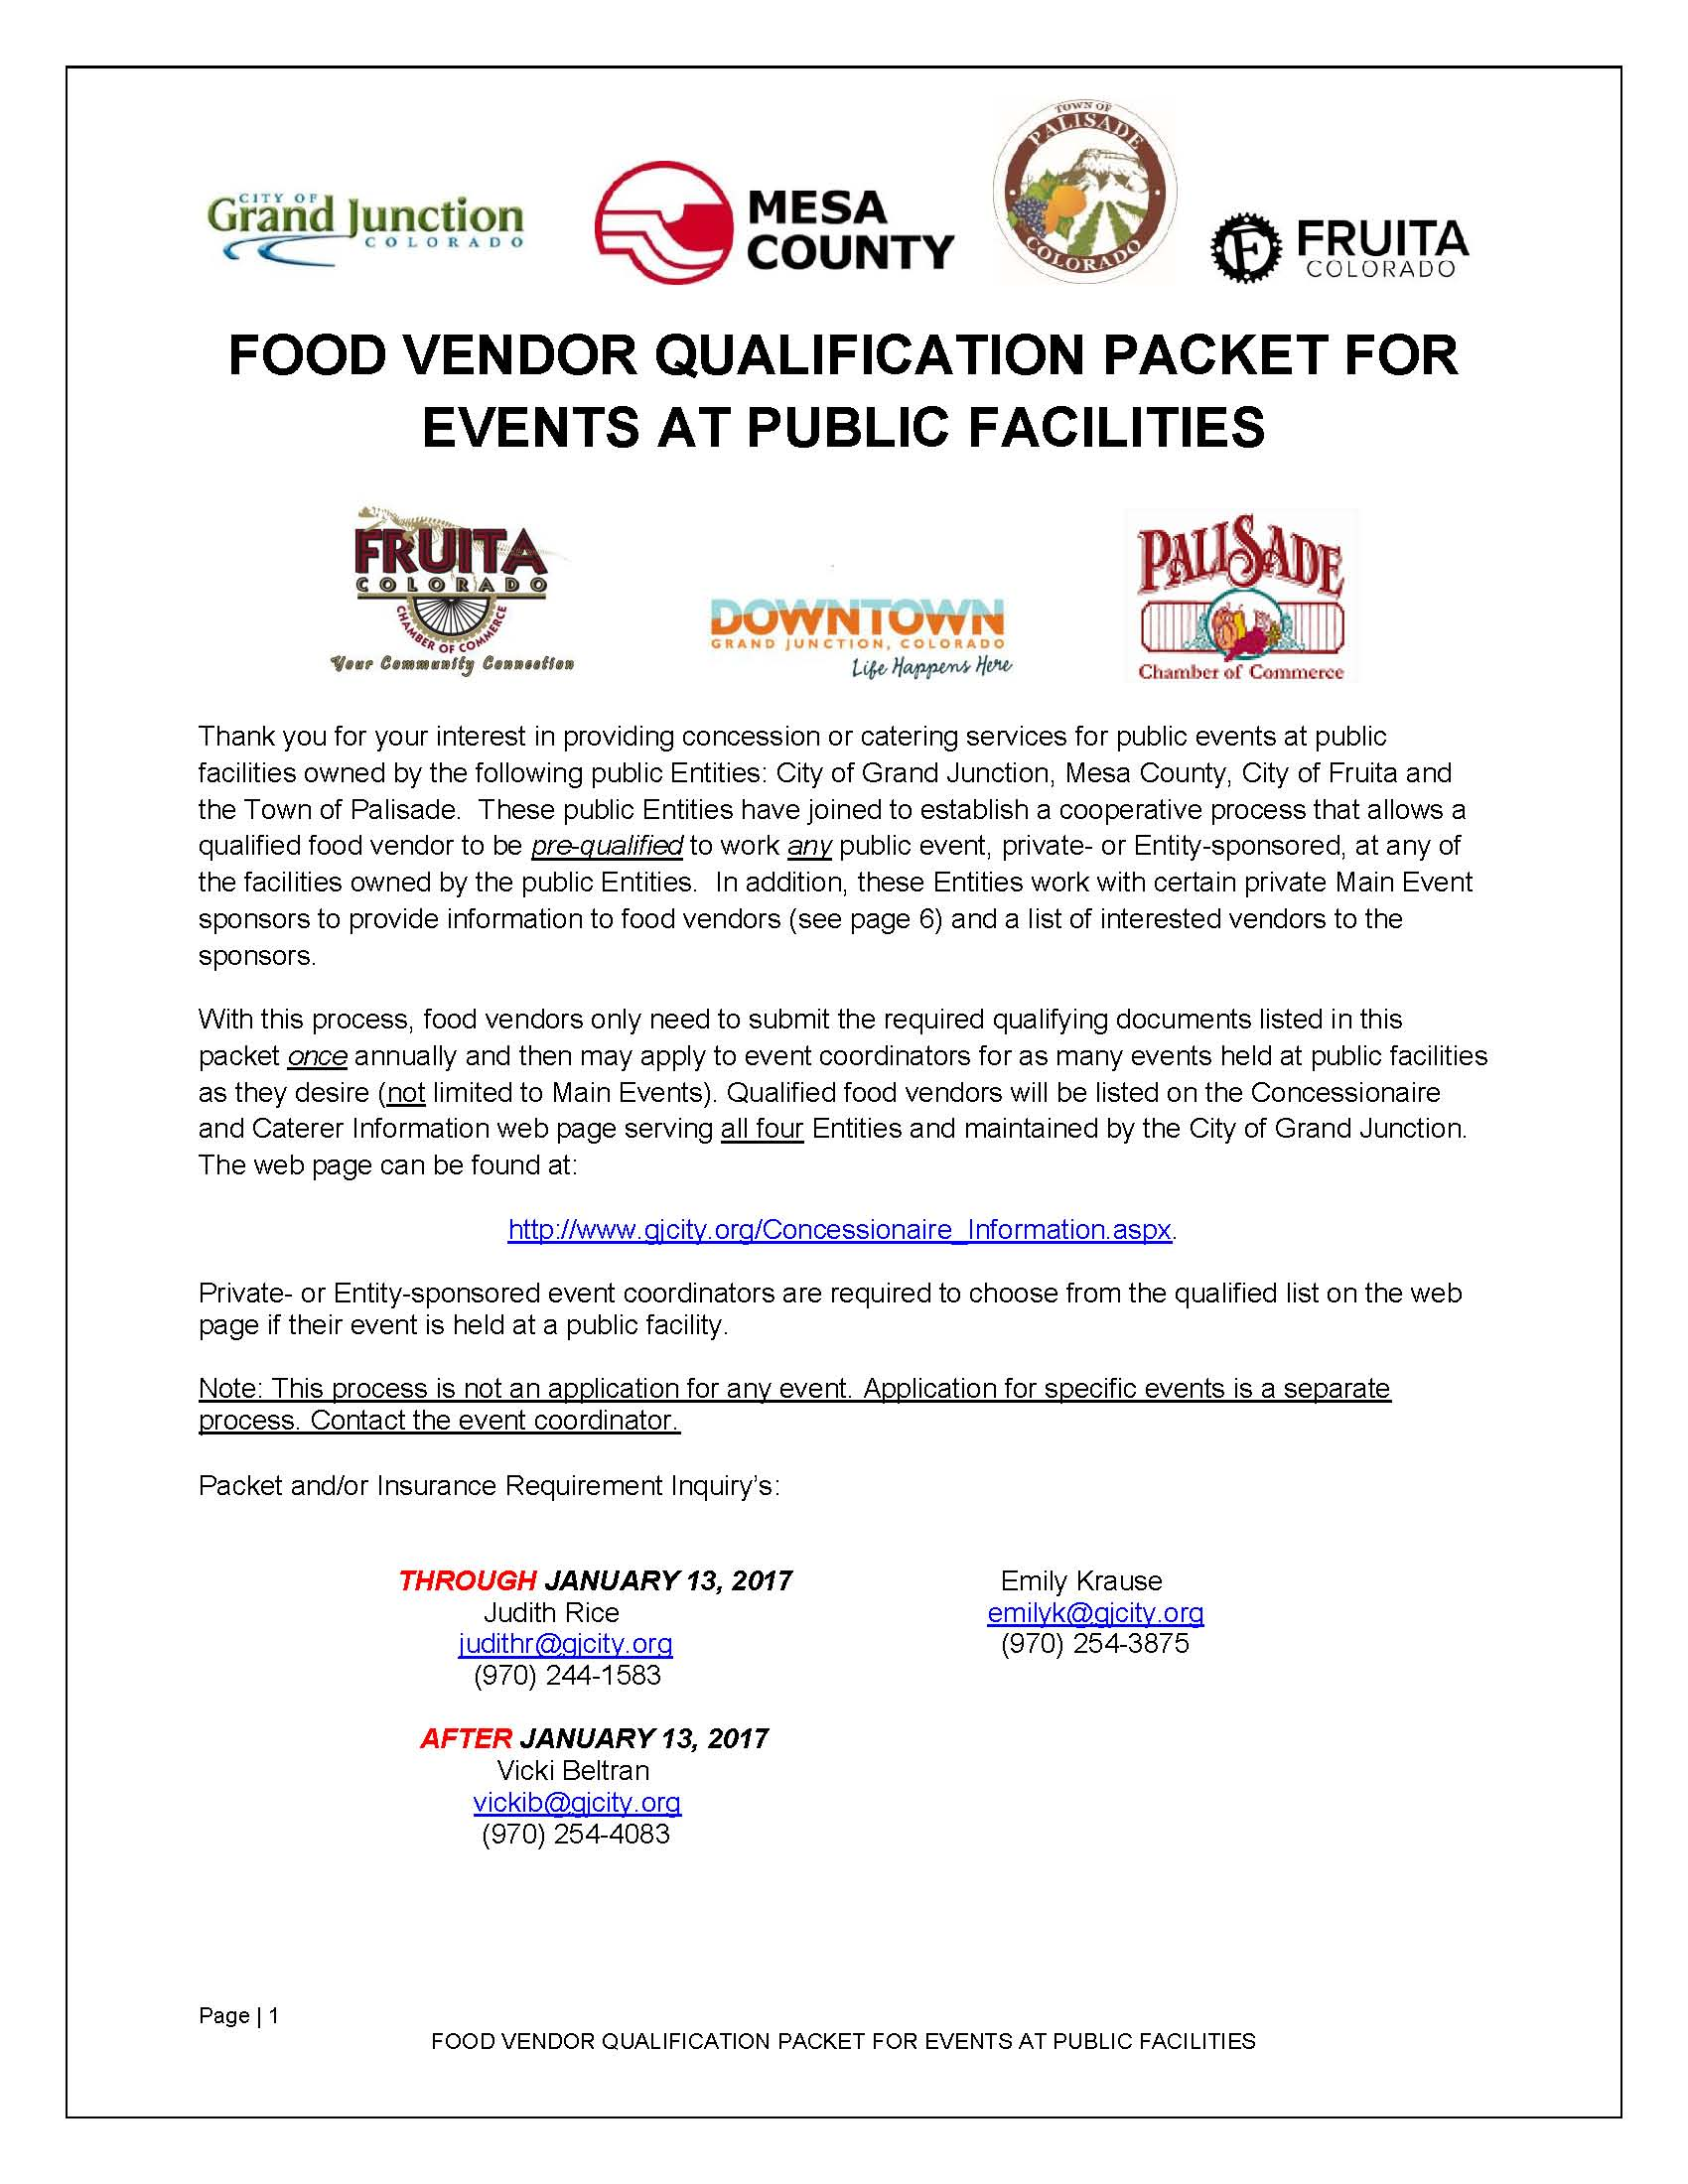 Food Vendor Qualification Packet for Public Facilities Page 1